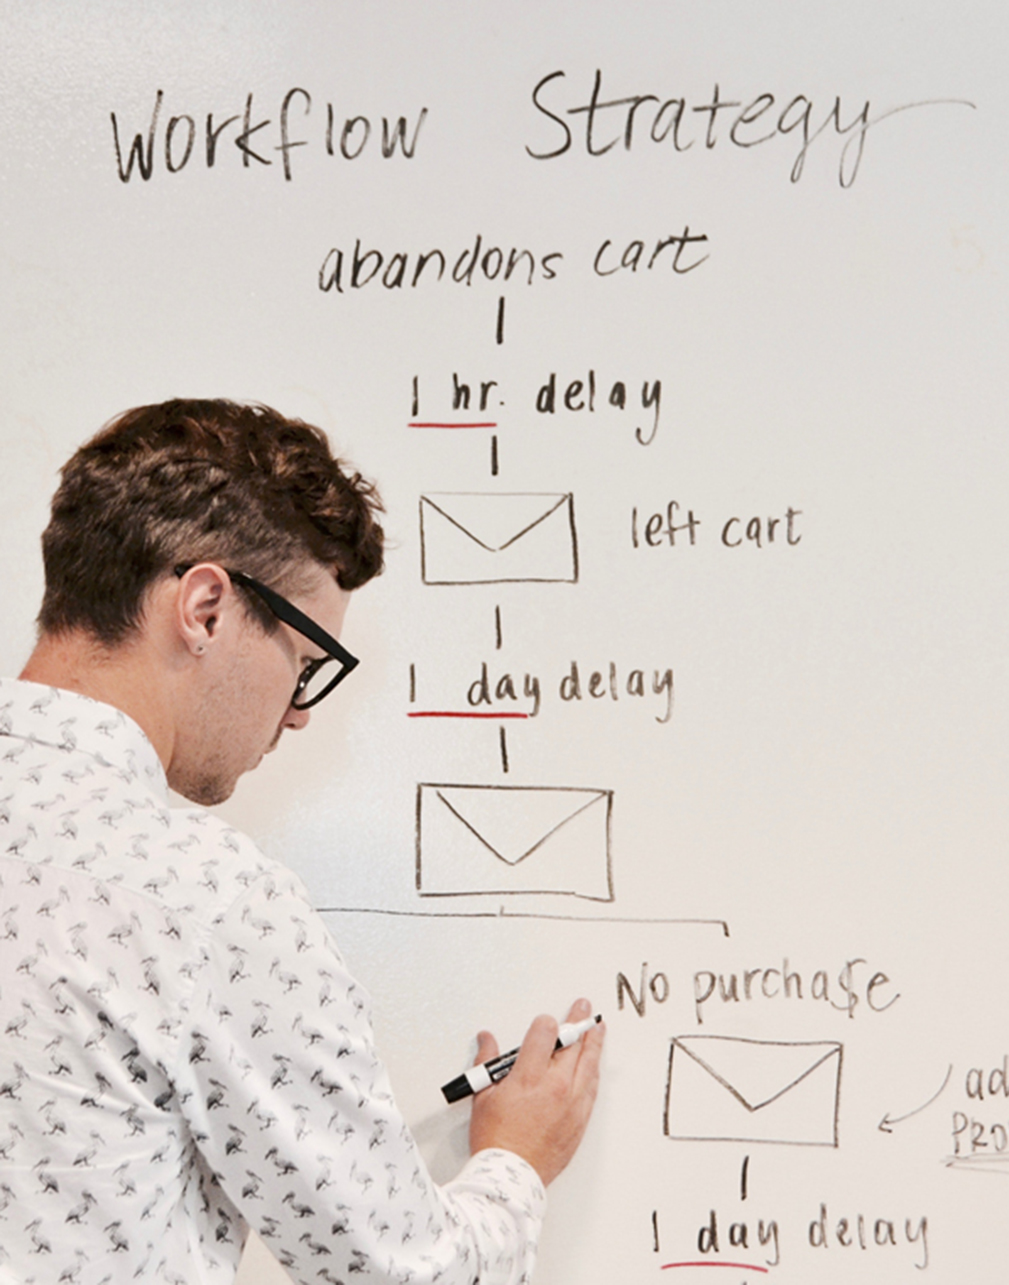 Person working on a workflow strategy